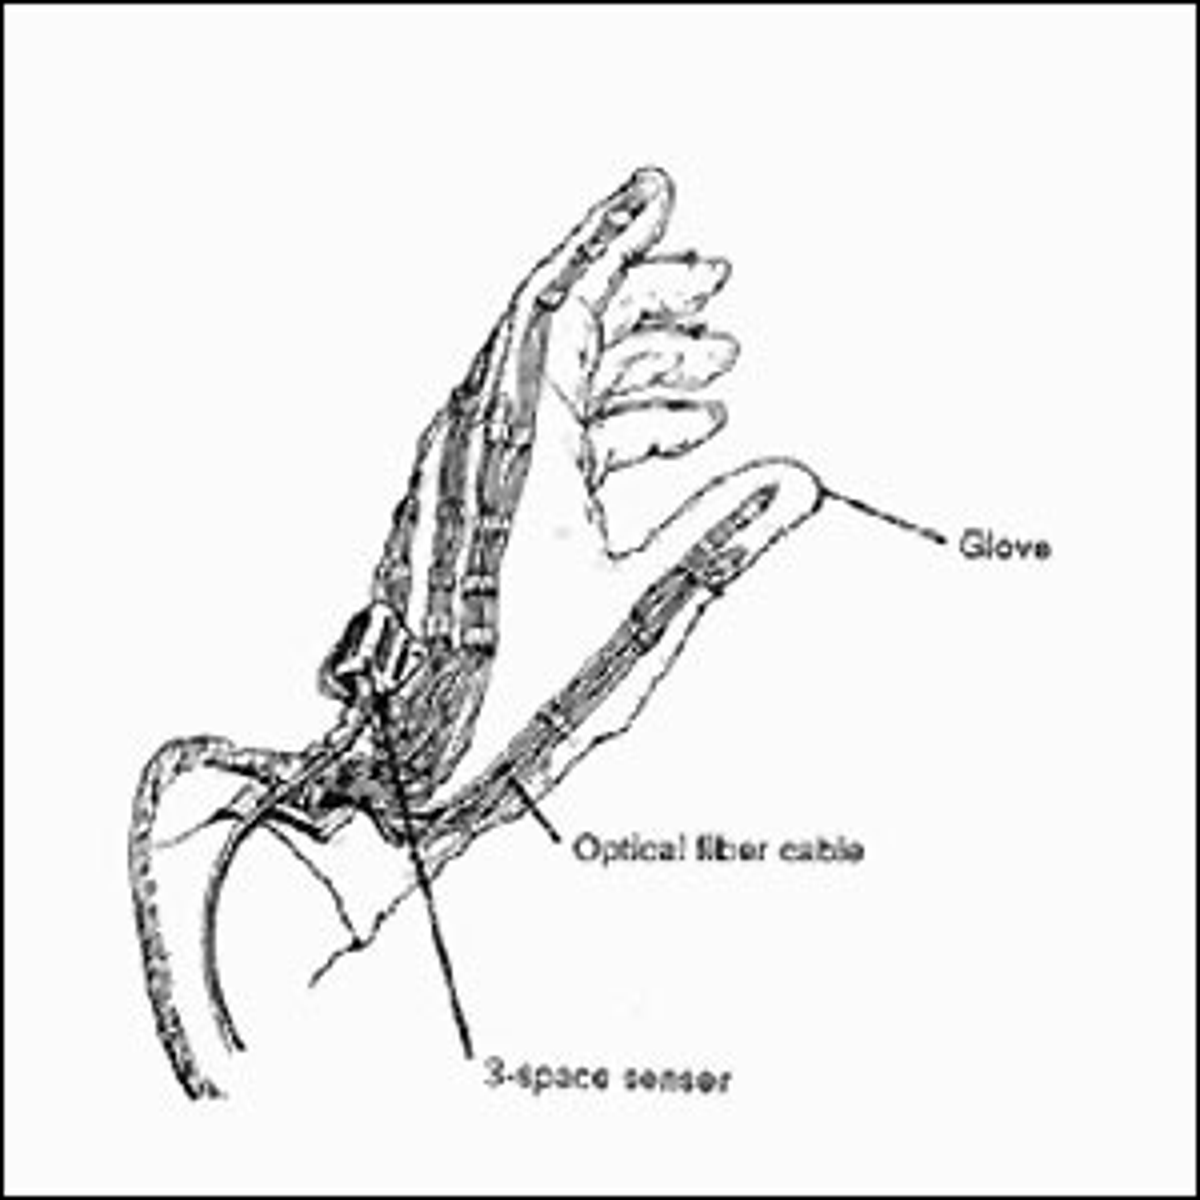 A black and white drawing of the Sayre glove.